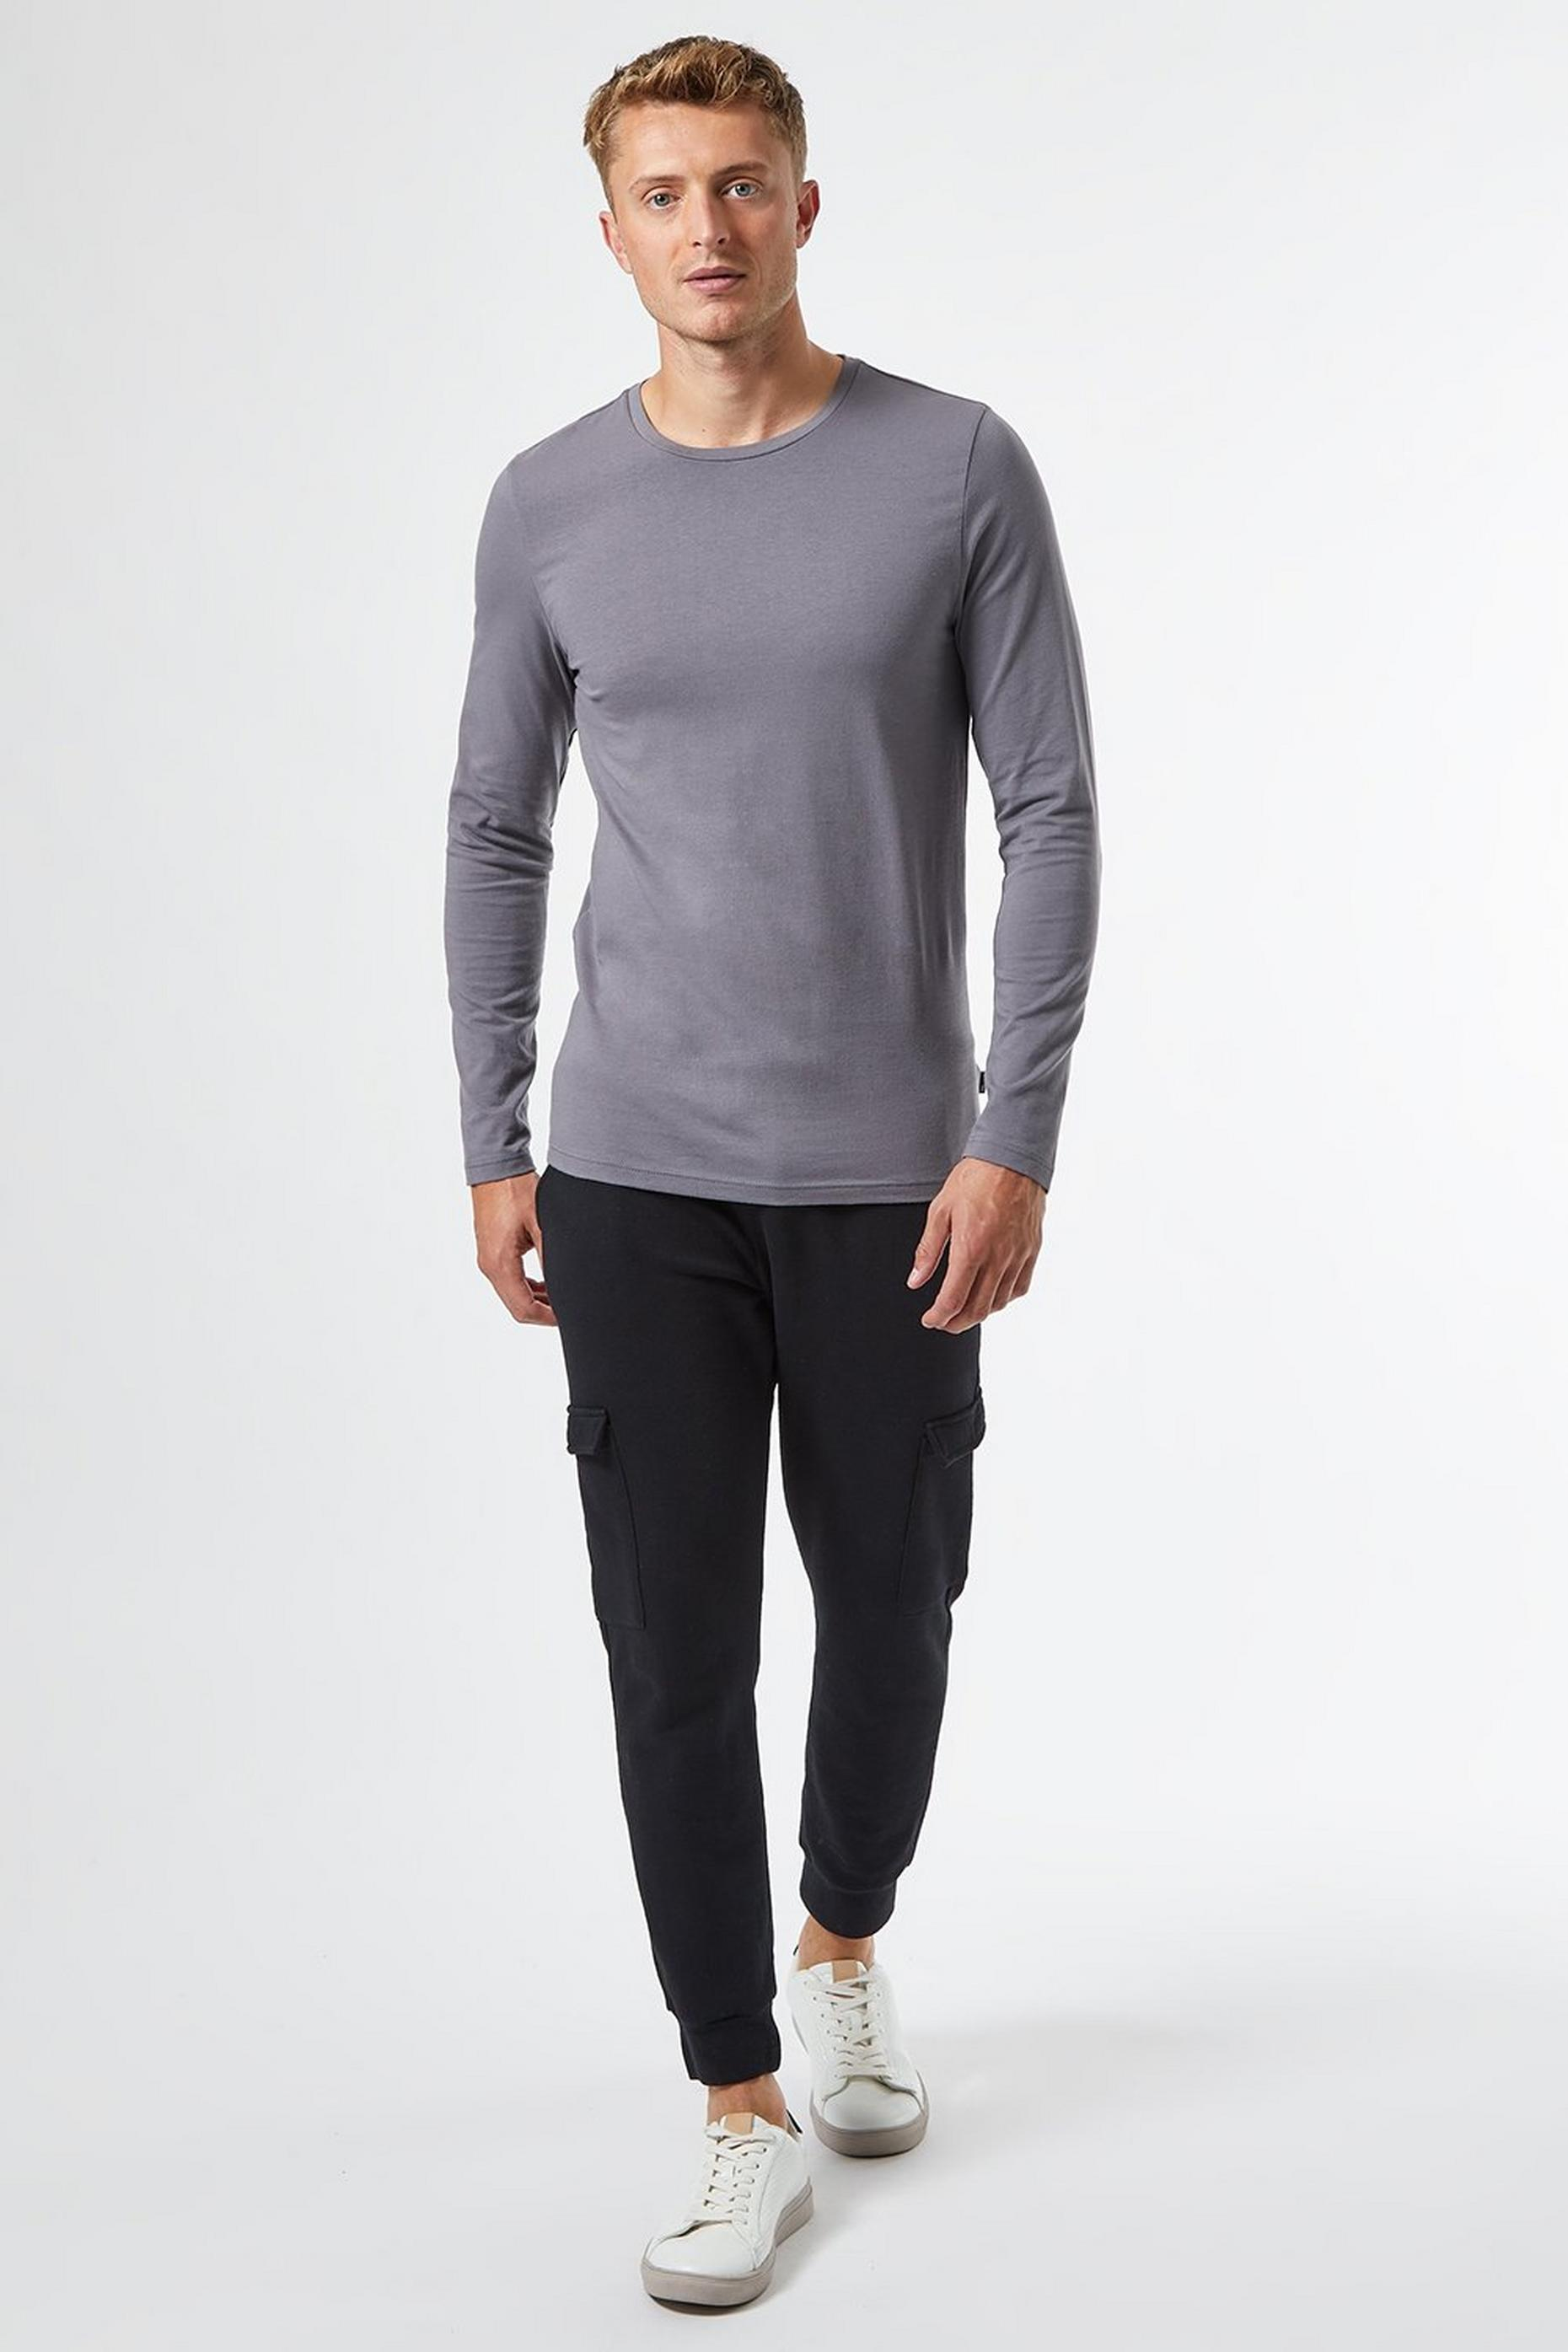 Grey Long Sleeved Muscle Fit TShirt